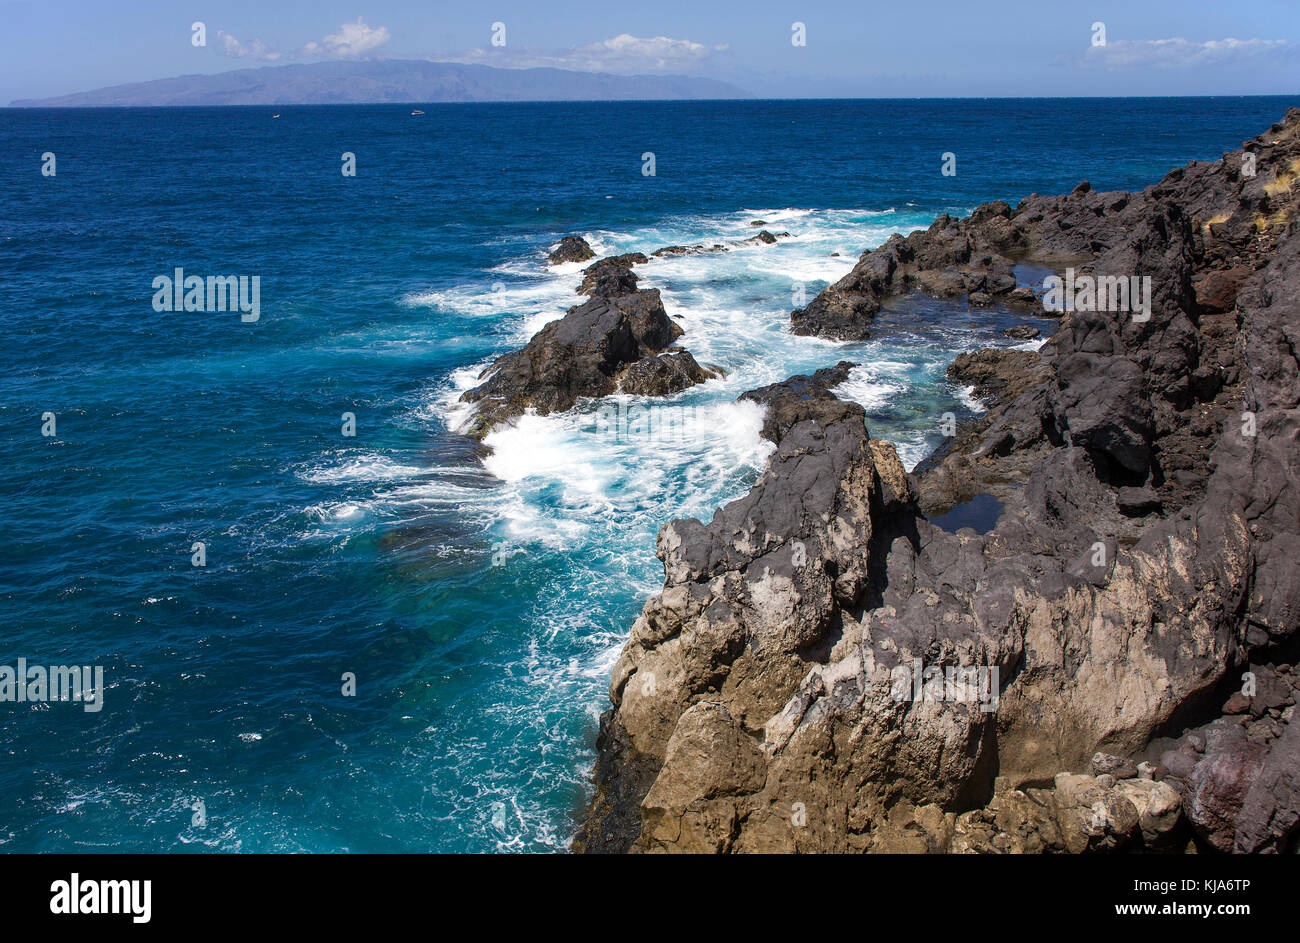 Kueste bei Los Gigantes an der Westkueste, view on rough sea, coast at Los Gigantes, west side of the island, Tenerife - Stock Image